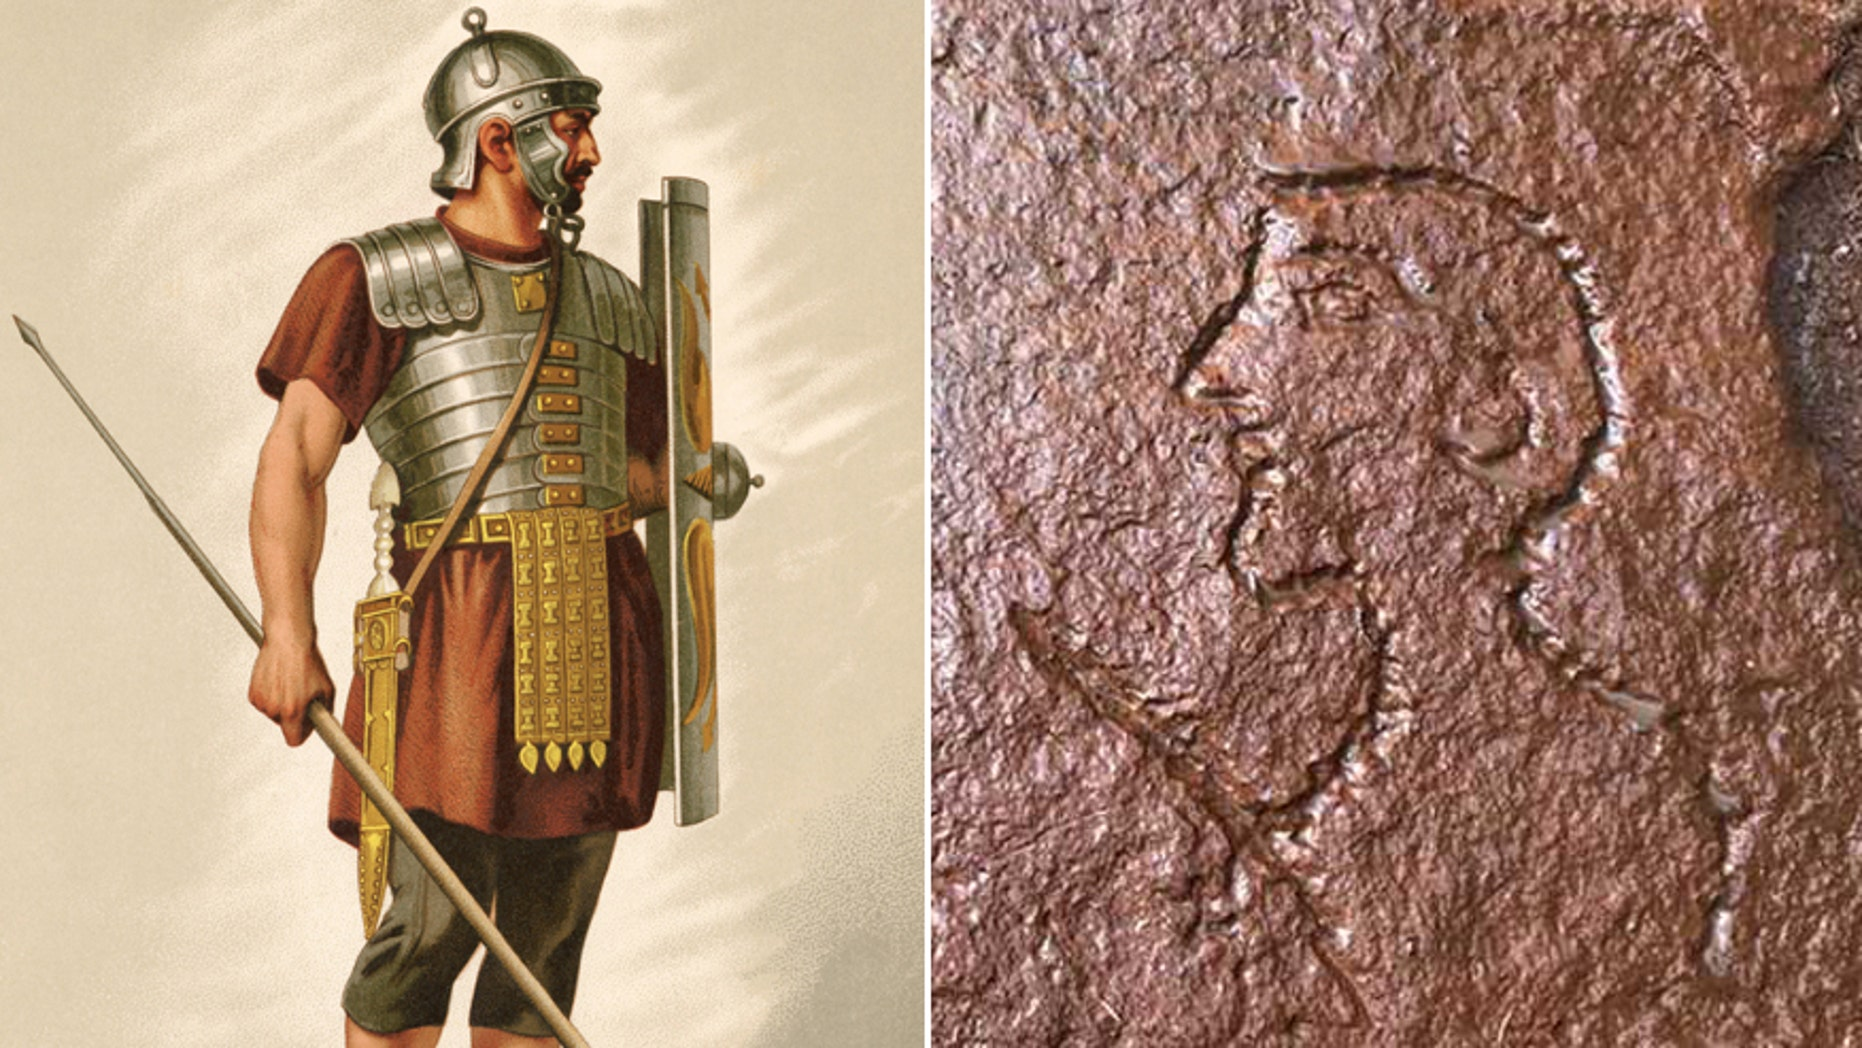 An illustration shows a Roman soldier/the caricature cut into the ancient quarry.